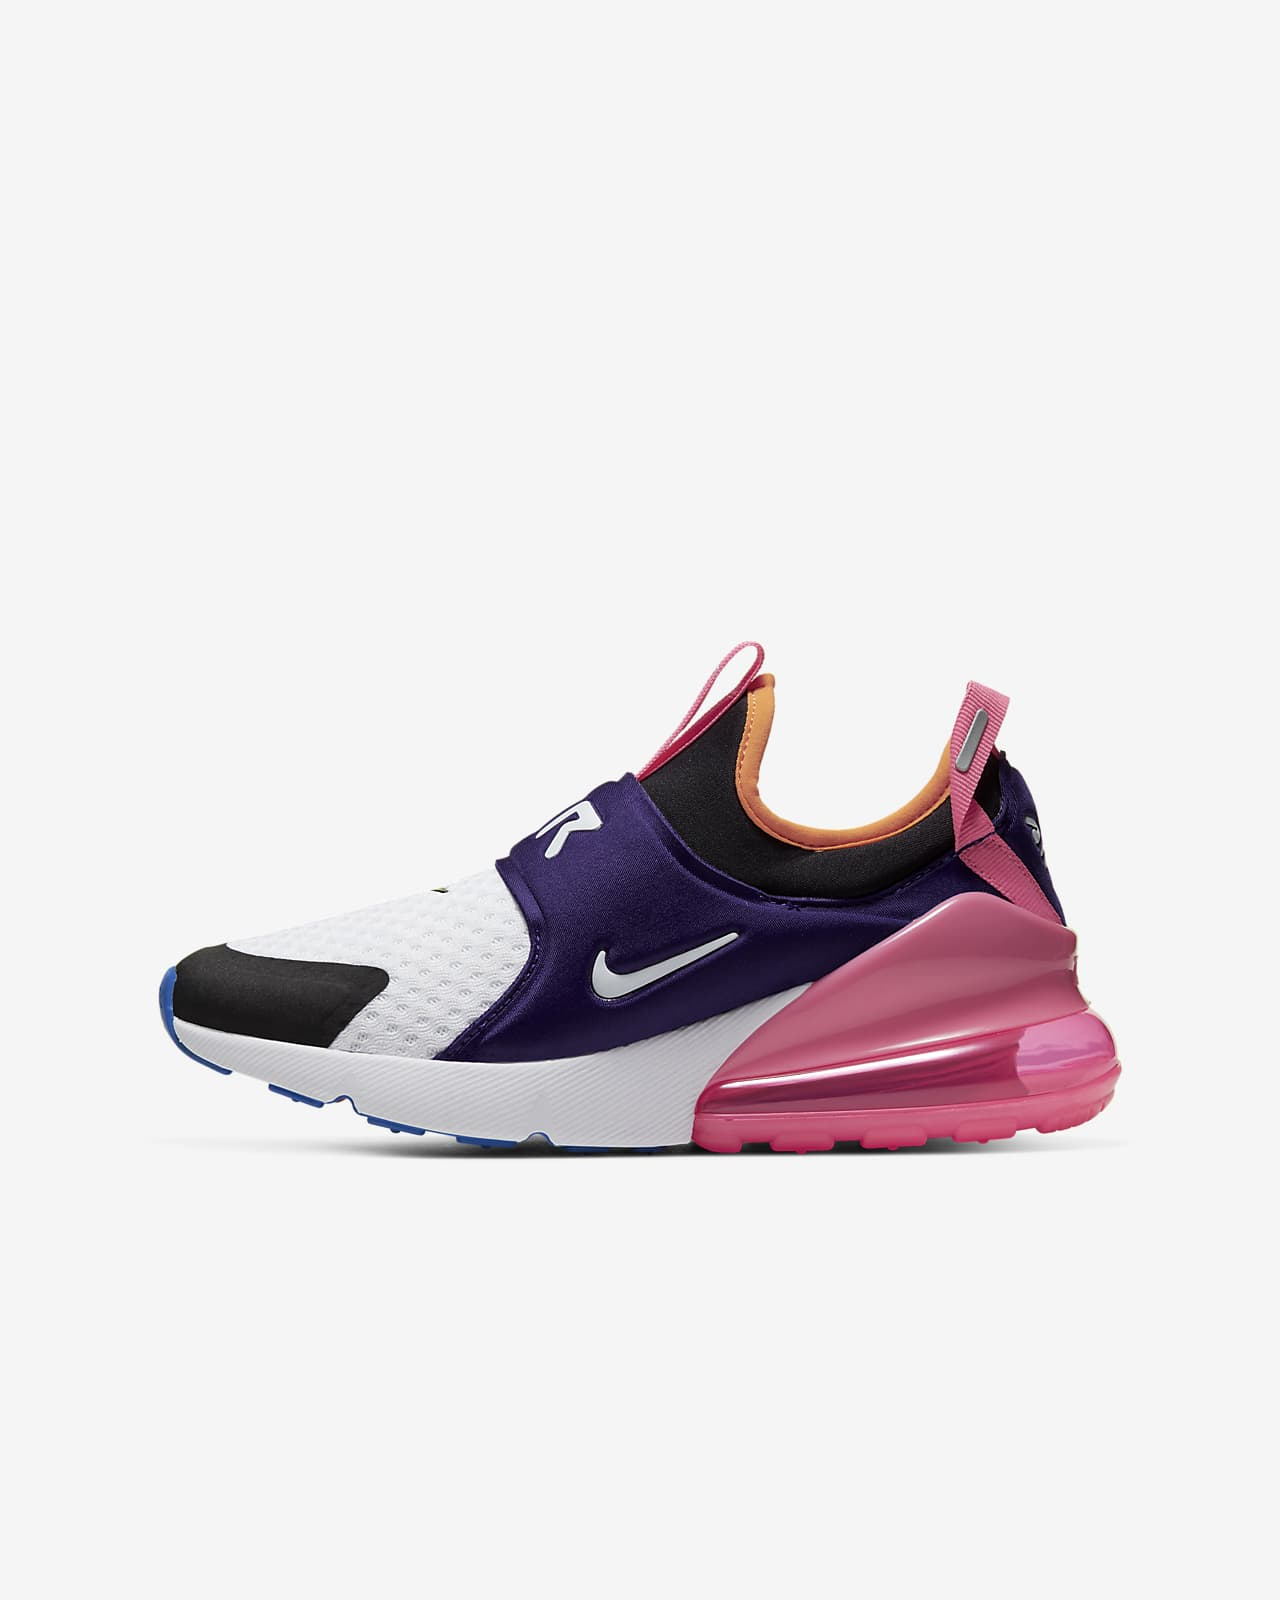 Nike Air Max 270 Extreme Older Kids' Shoe